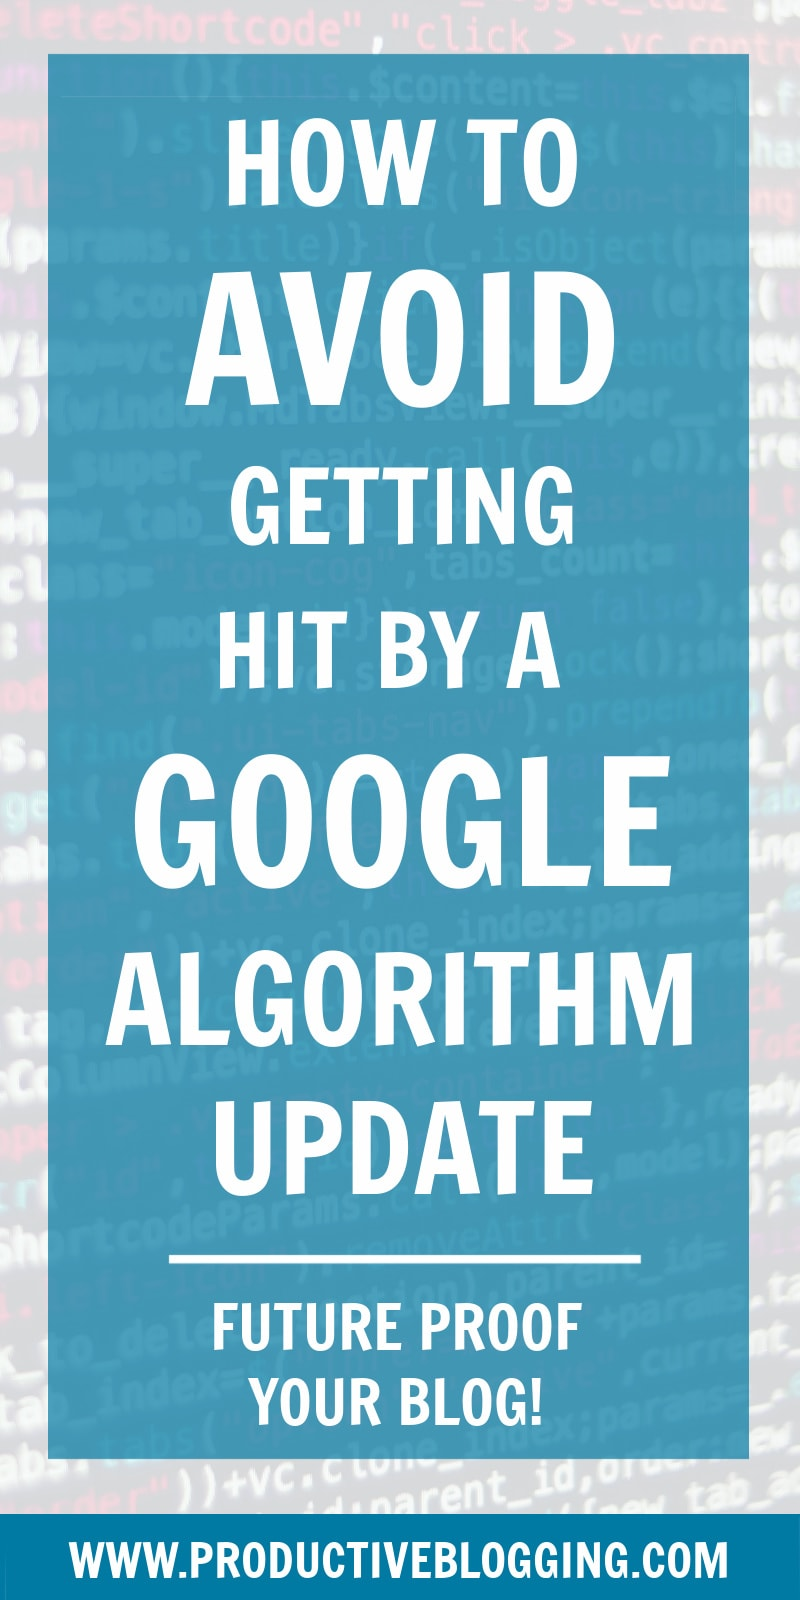 Google is constantly updating its algorithm. Updates can either help or hurt your website. Here's how to avoid getting hurt by a Google algorithm update #google #googleupdate #googlealgorithm #googlealgorithmupdate #SEOforbloggers #SEOforbeginners #beginnersSEO #SEO #SEOtips #SEOhacks #searchengineoptimisation #searchengineoptimization #keywords #growyourblog #bloggrowth #bloggrowthhacks #bloggingtips #blogginghacks #blogging #bloggers #blogsmarter #blogsmarternotharder #productiveblogging